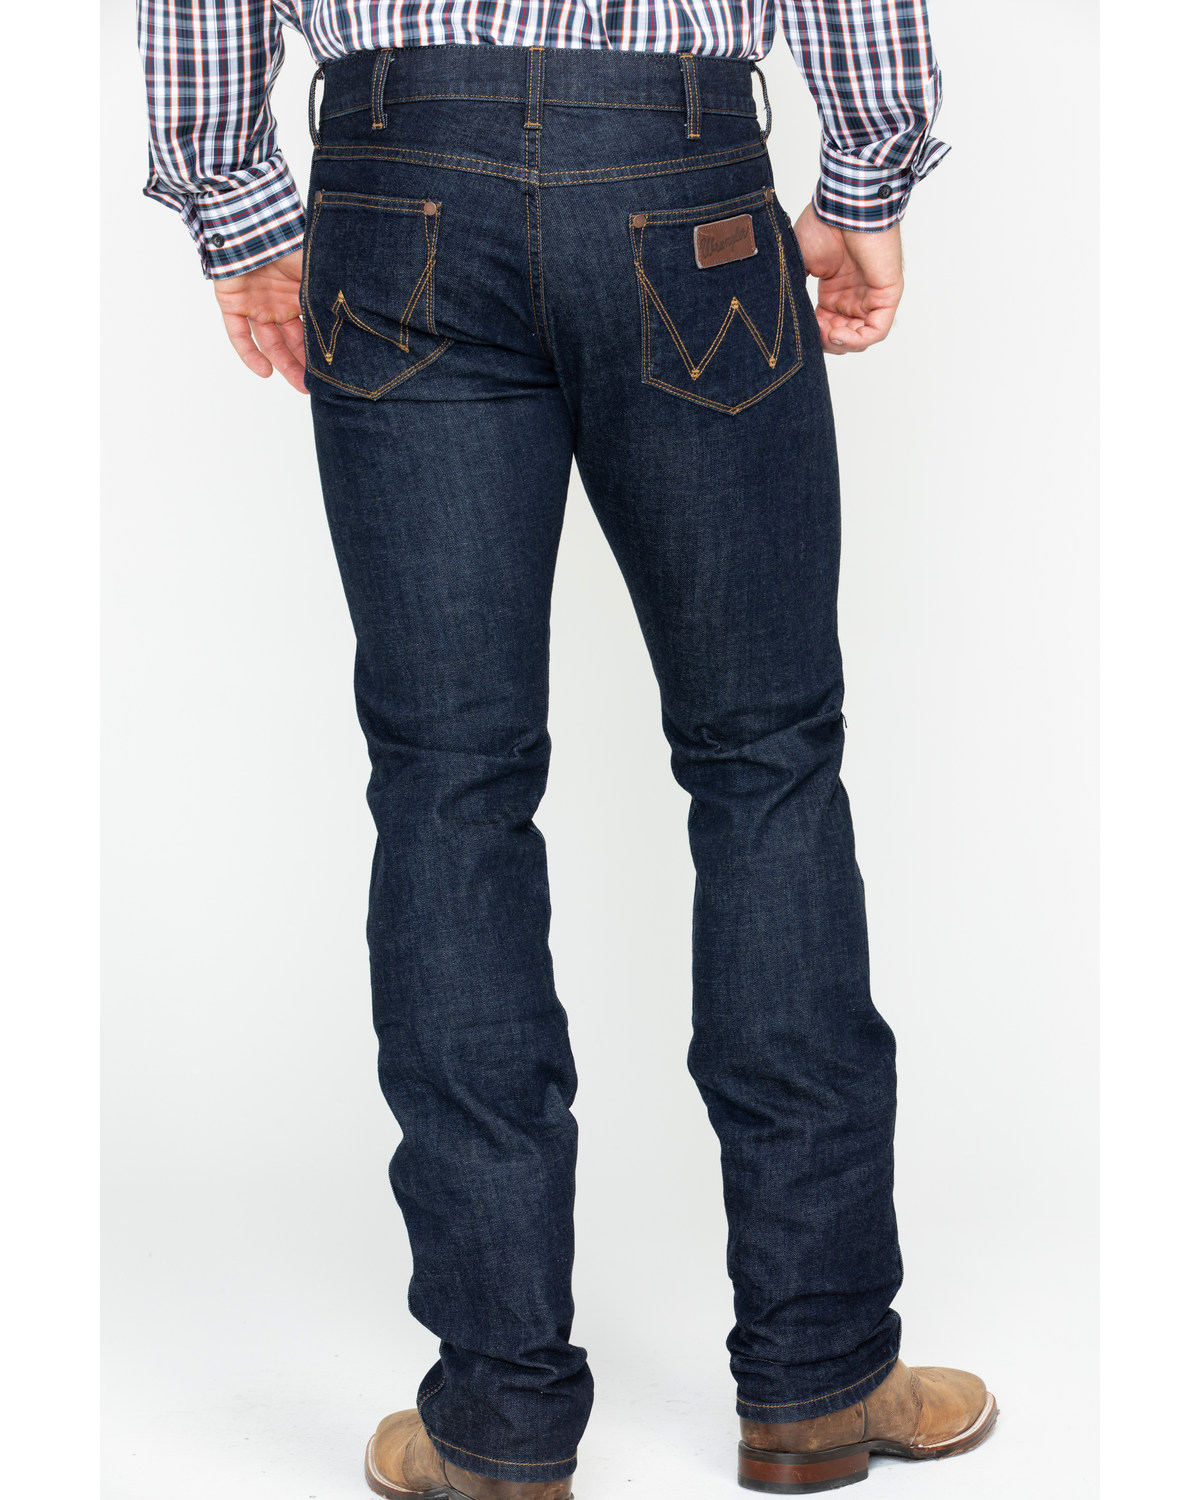 big discount sale hot-selling cheap the cheapest Wrangler Retro Men's Bezar Slim Seat Skinny Jeans